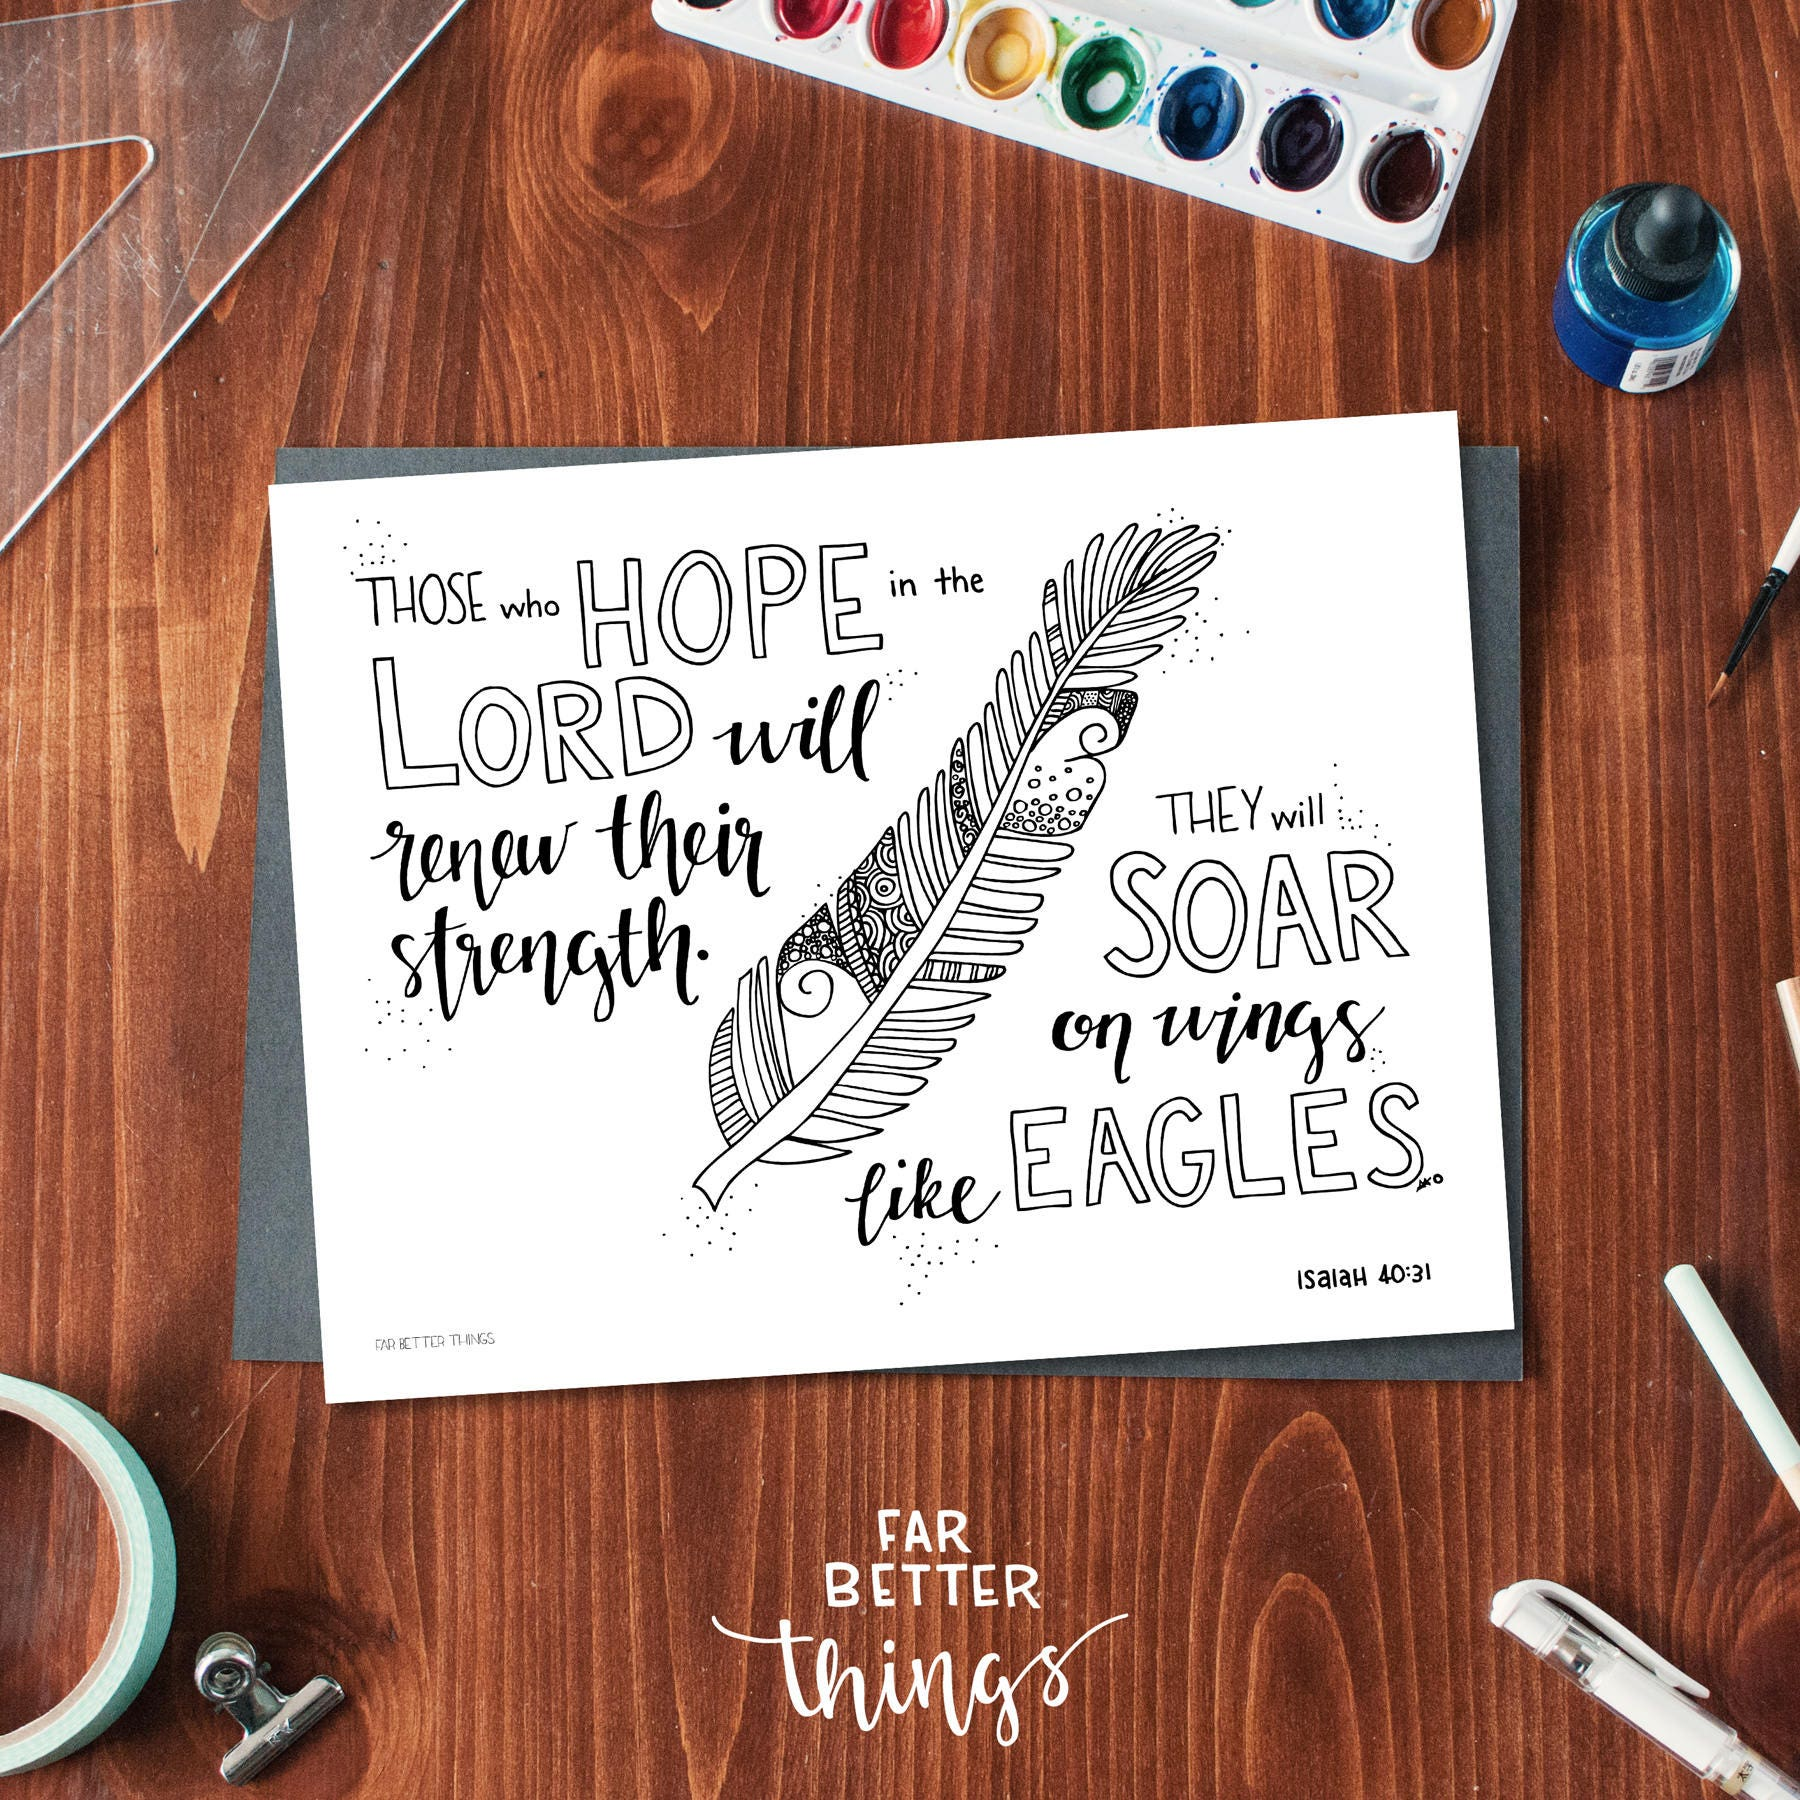 Printable coloring pages etsy - Bible Verse Coloring Page Isaiah 40 31 Printable Coloring Page Bible Verse